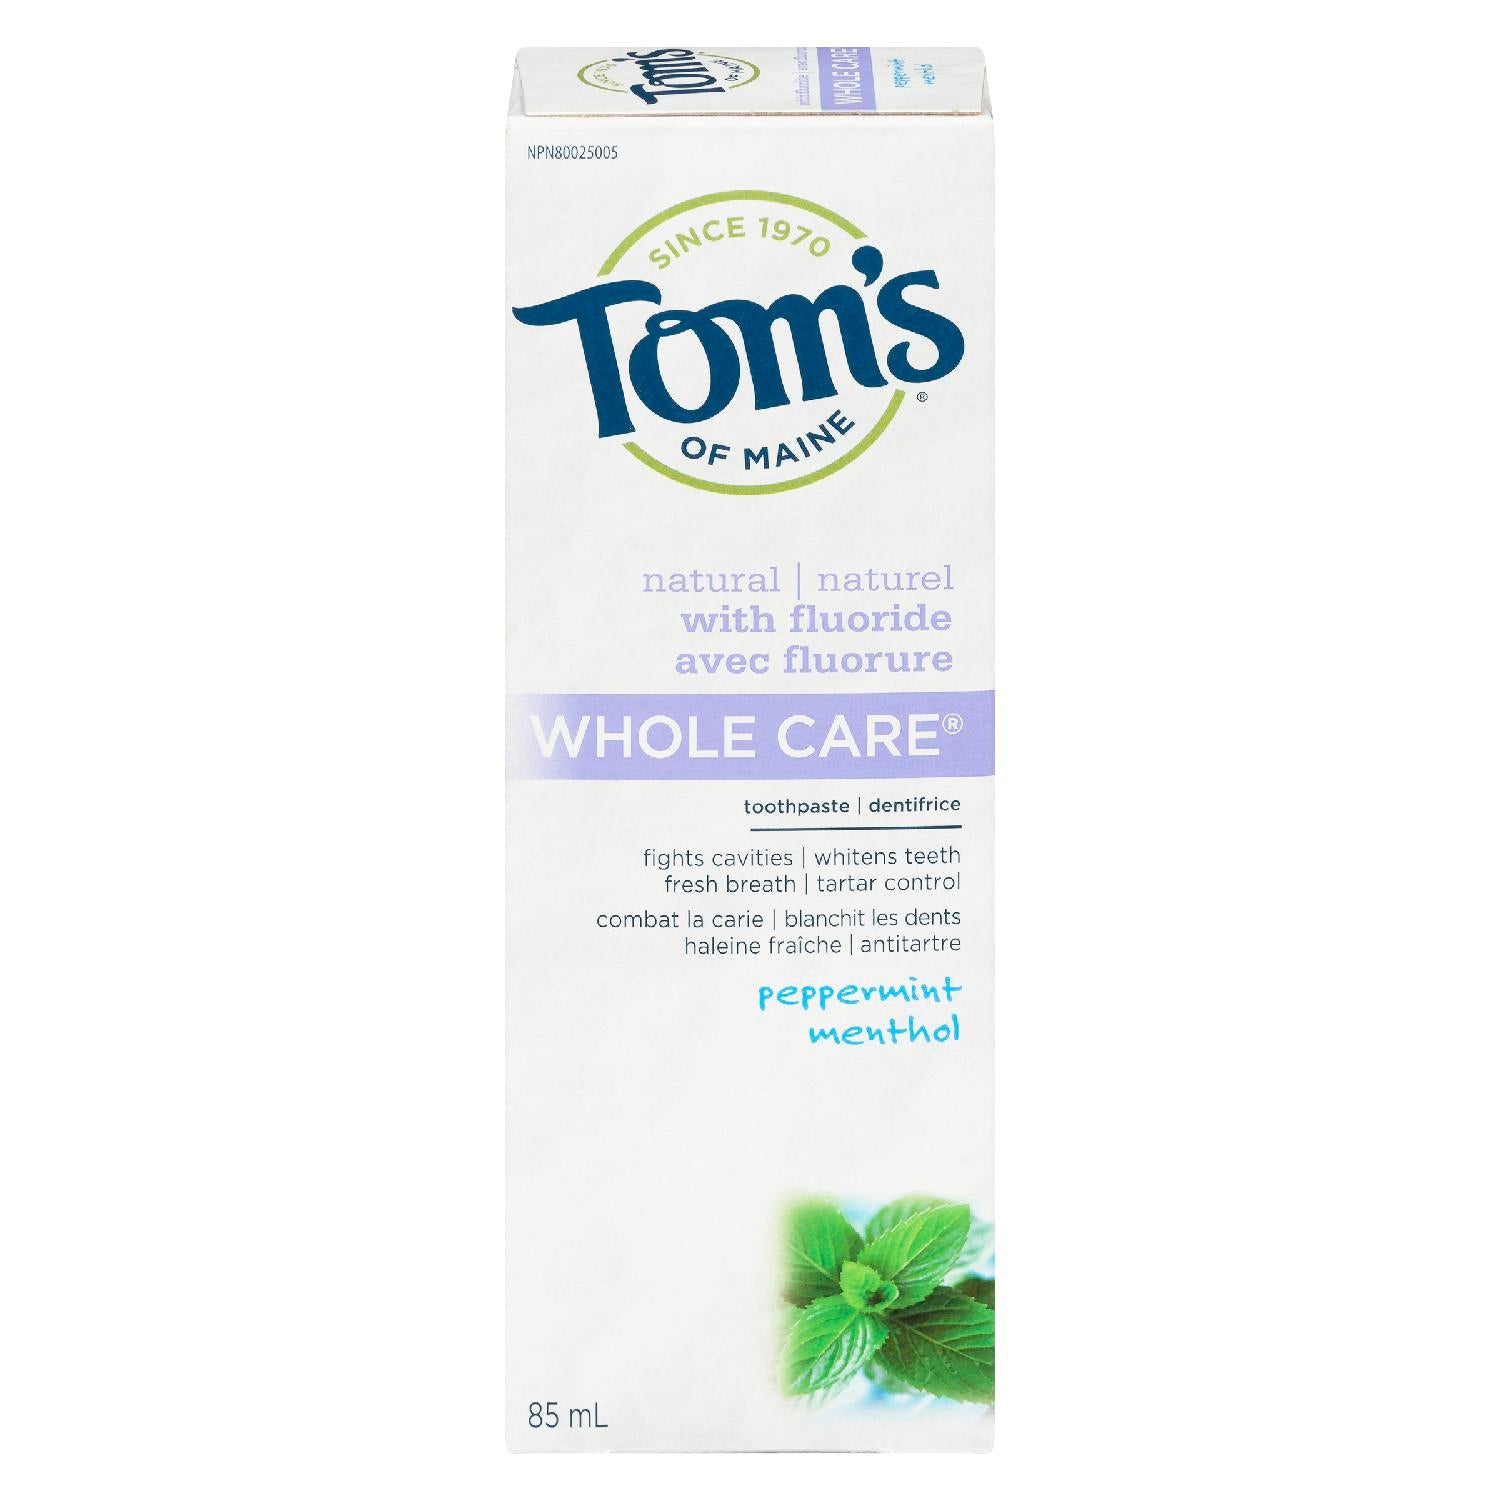 Tom's of Maine Whole Care Toothpaste 85mL